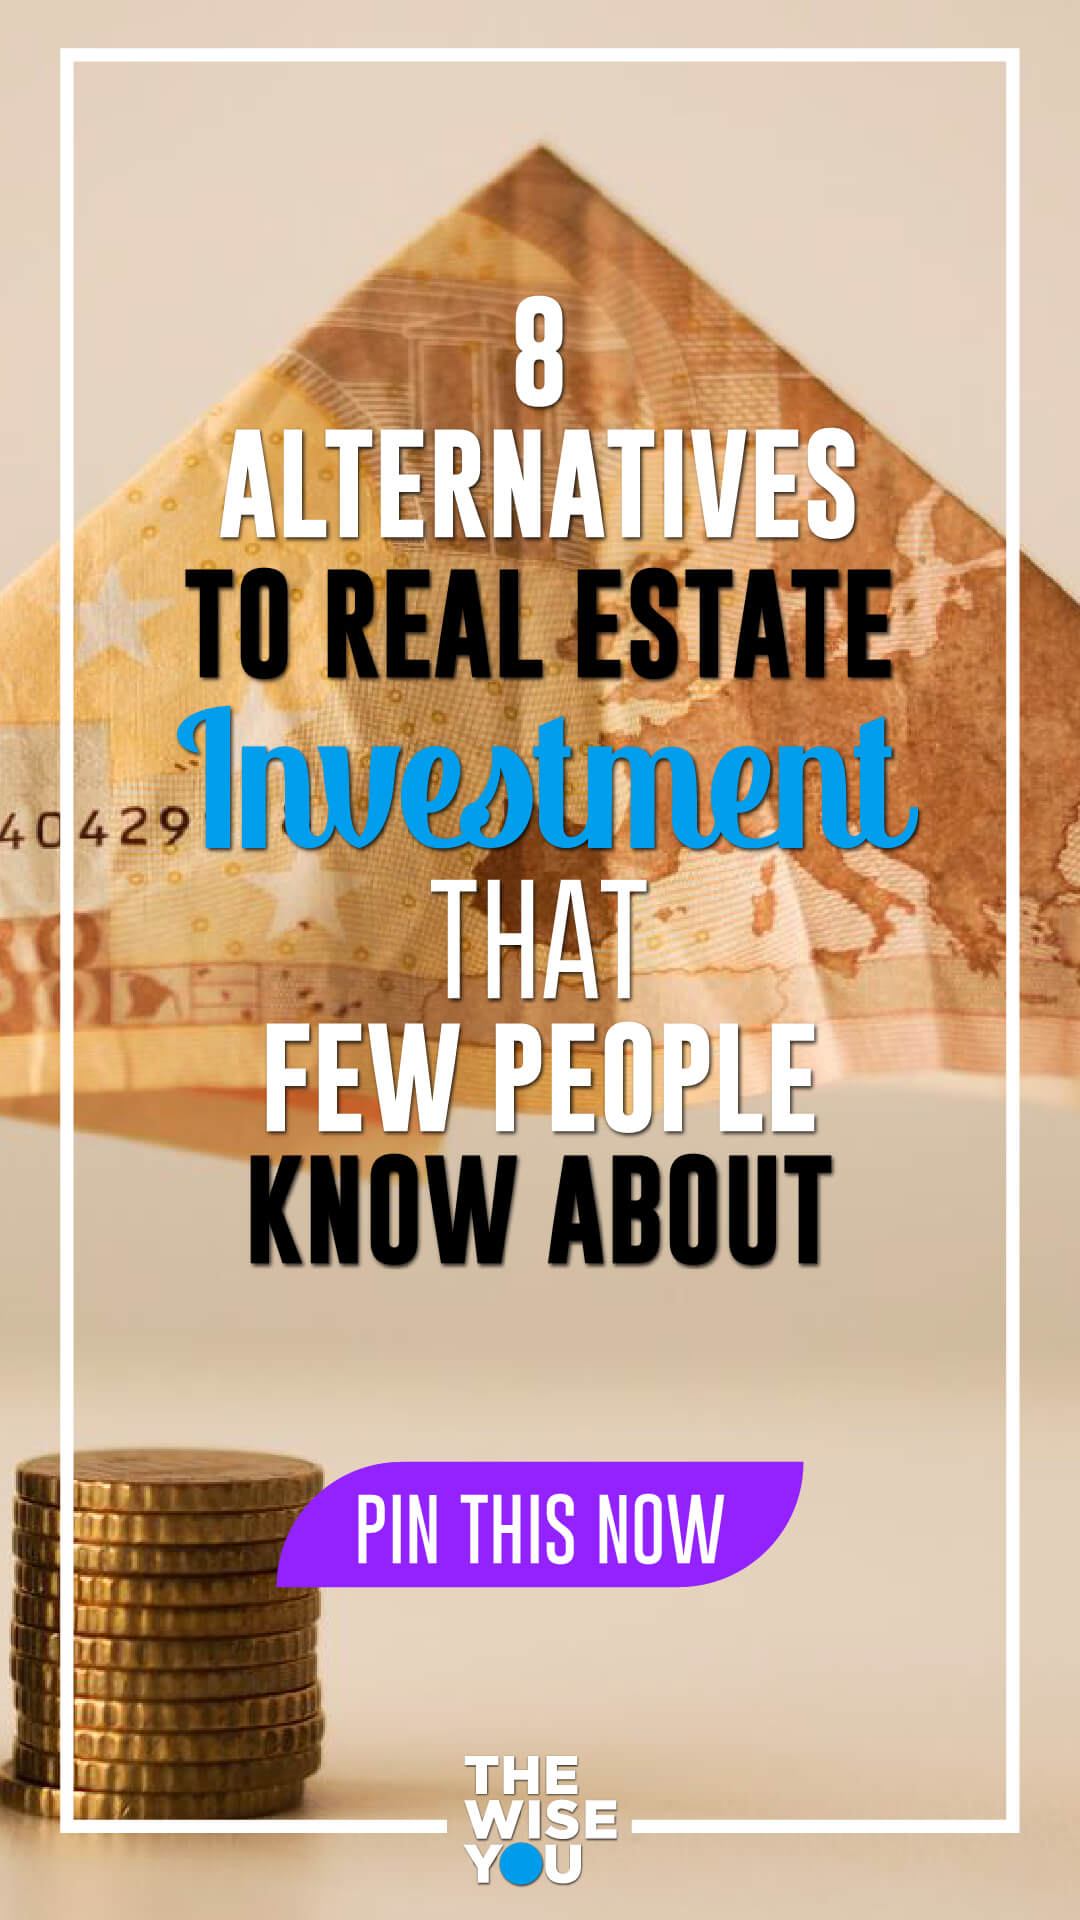 8 Alternatives to Real Estate Investment That Few People Know About